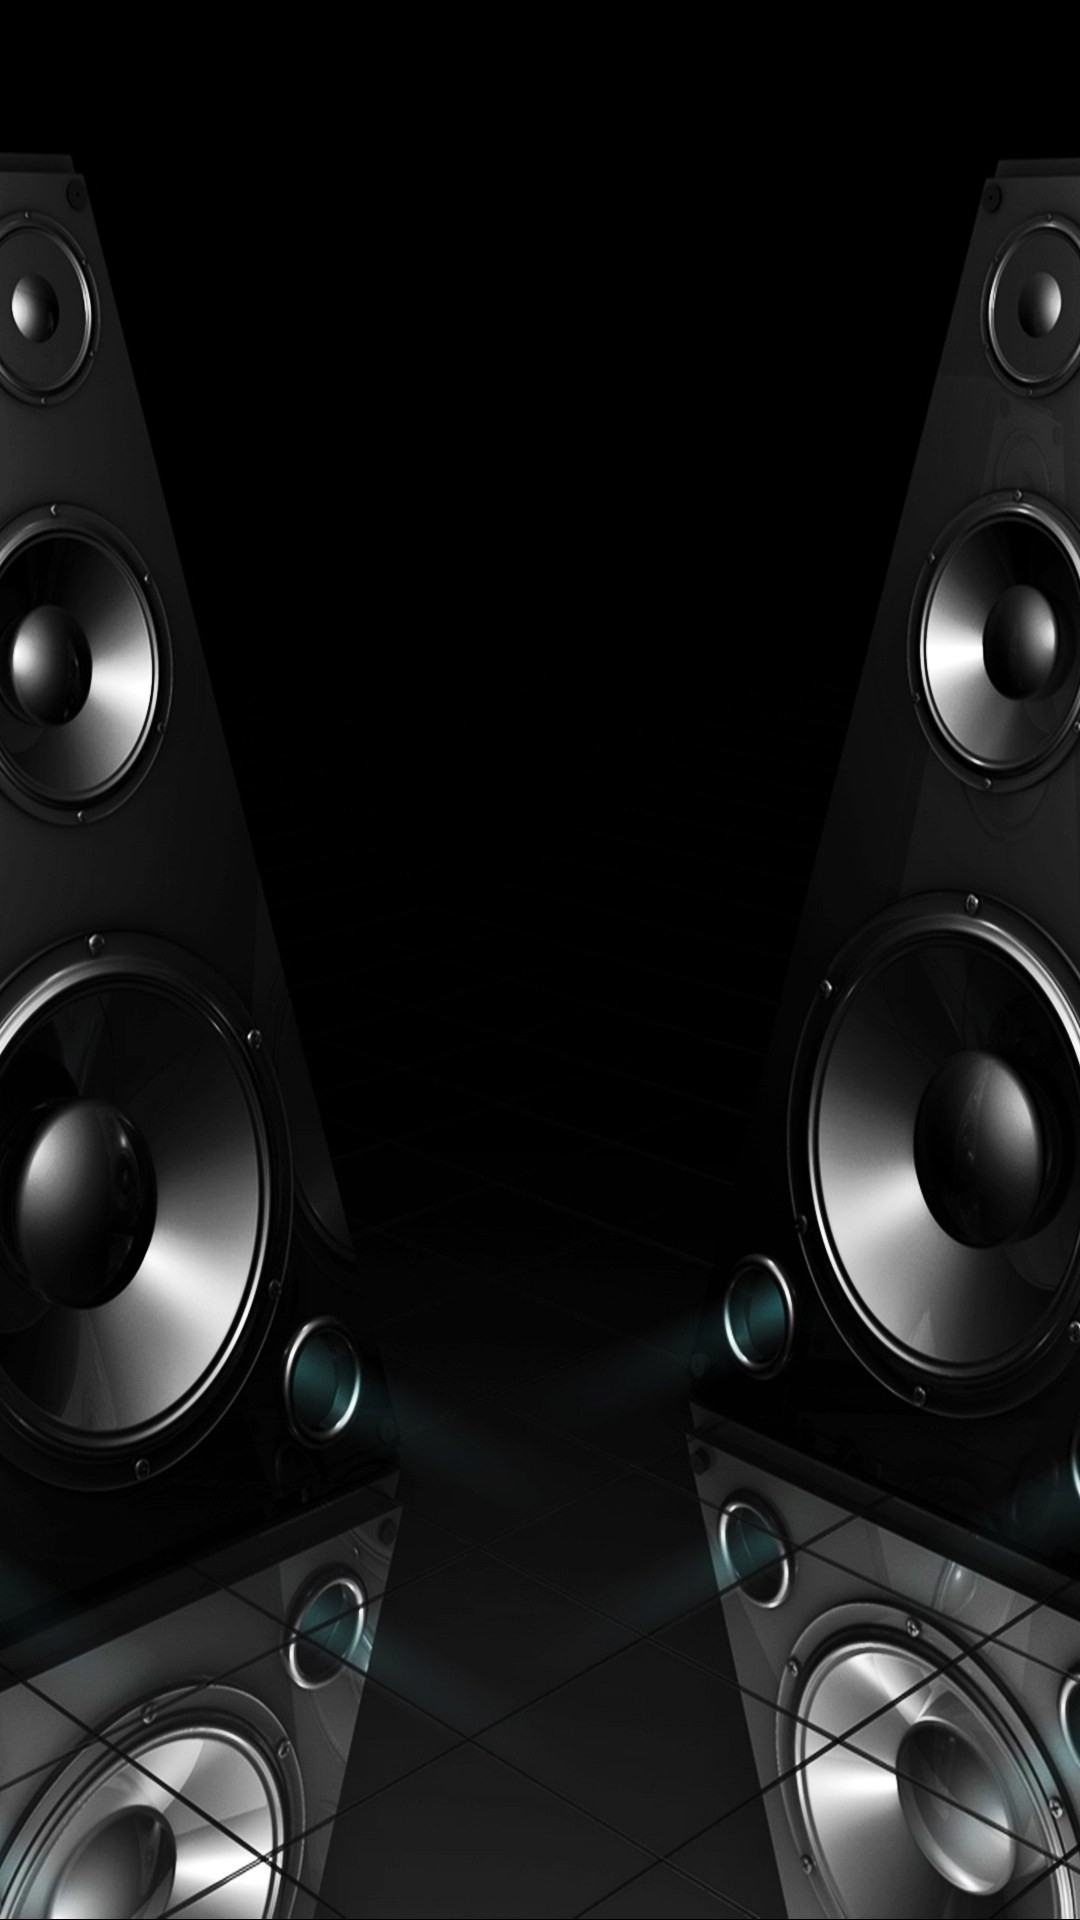 Black-Speakers-3D-iPhone-6-Plus-HD-Wallpaper.